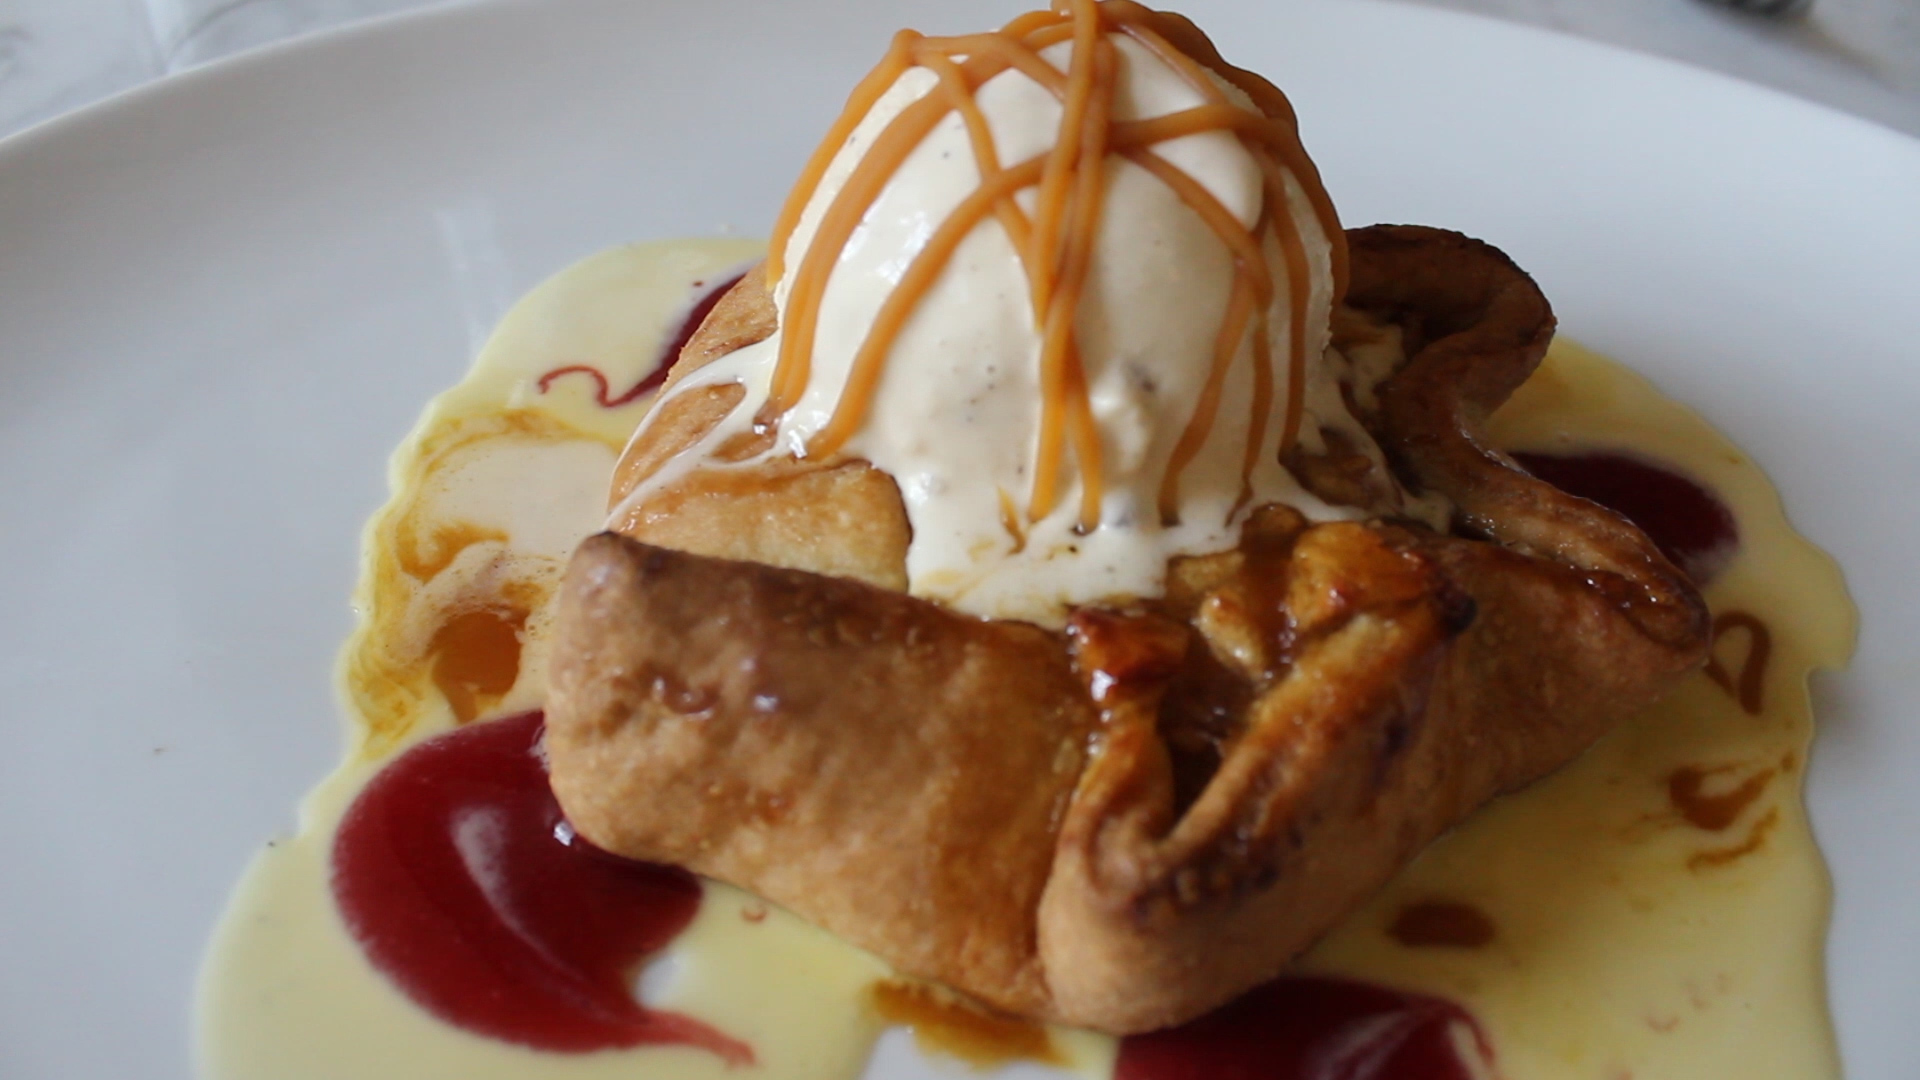 Warm Apple Tarte at 39 Rue de Jean is their answer to Southern but French